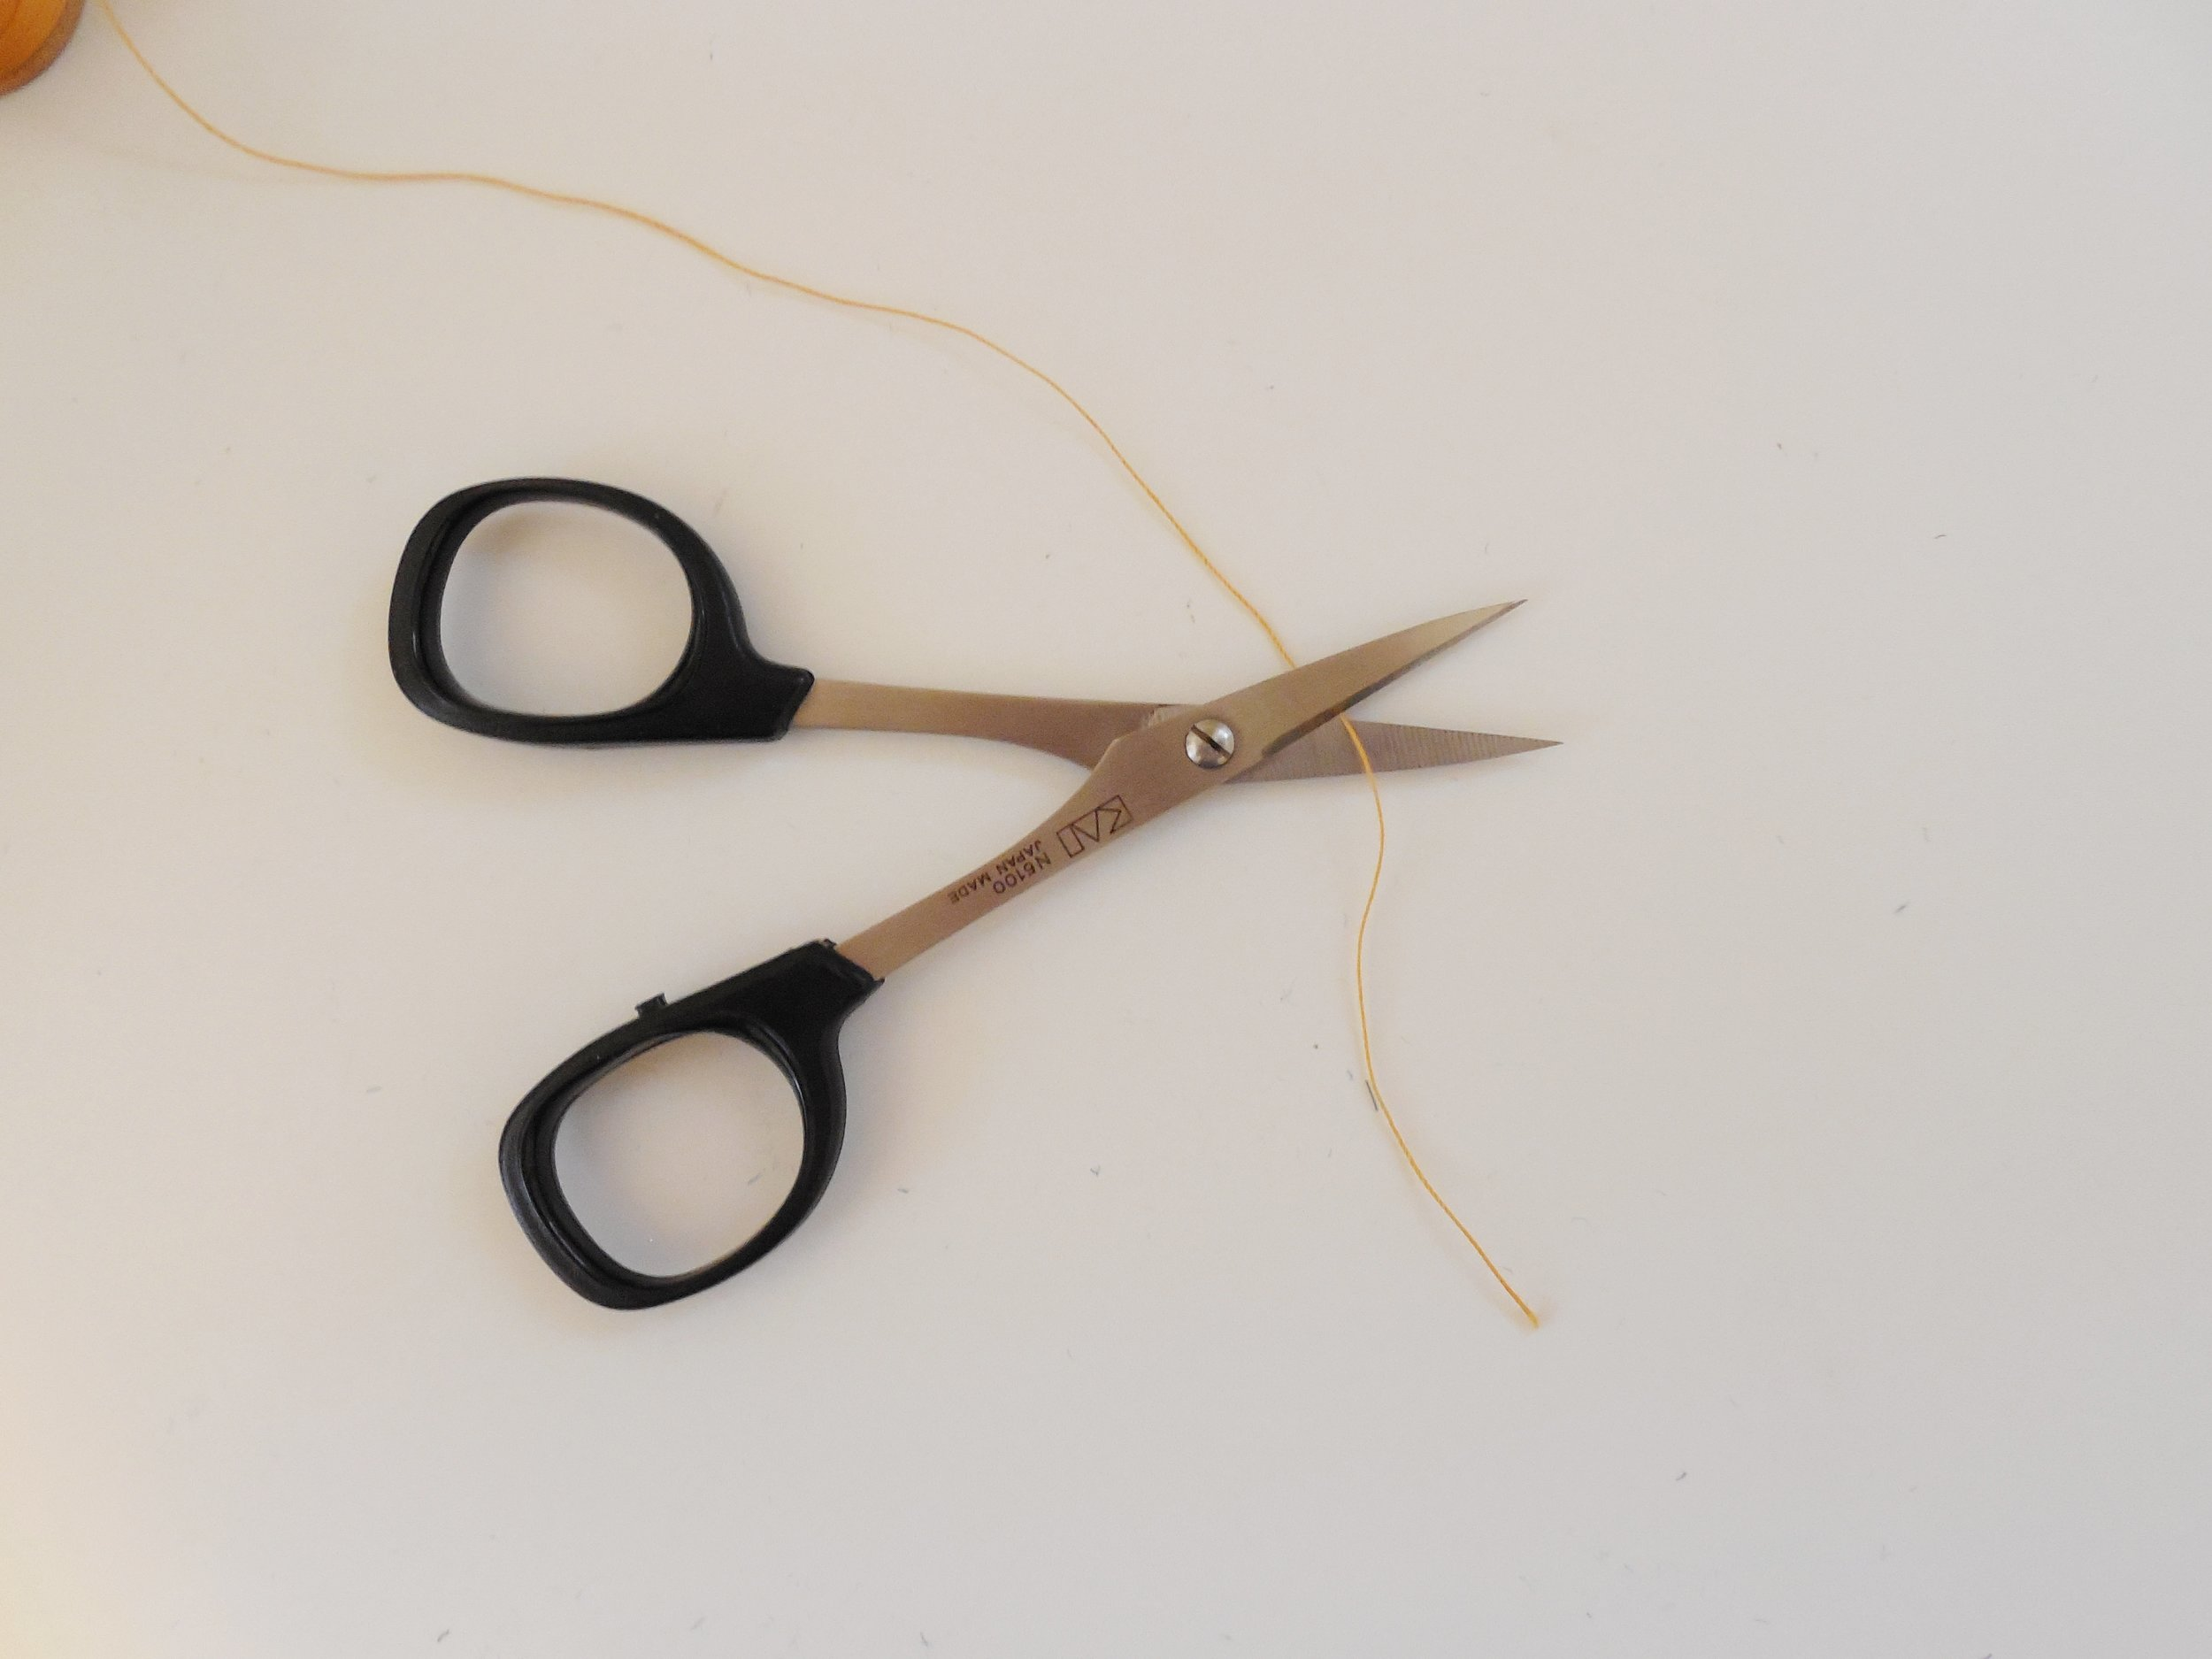 Embroidery scissors - Tiny and fierce, these delicate looking Kai embroidery scissors are used to snip thread. They are so precise that they can cut stray threads right at the surface of the garment without making a nick.